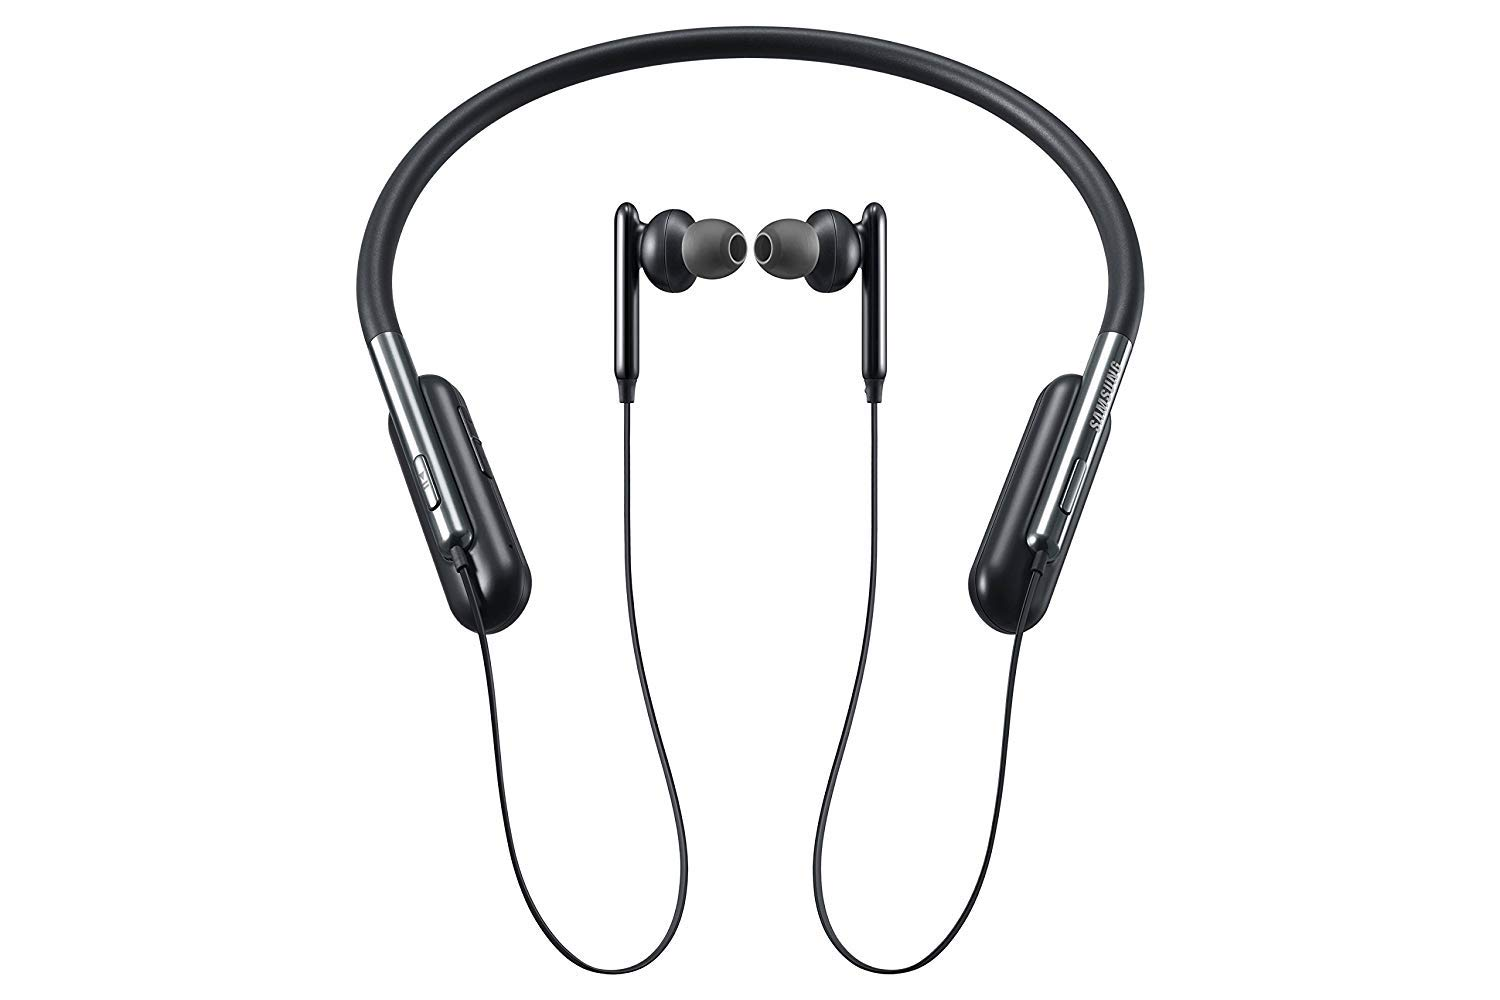 a0db3ad6205 Samsung U Flex Bluetooth Wireless in-Ear Headphones HD Premium Sound and  Mic - with Car-Charger 4FT USB Kit (US Model - Retail Packing): Amazon.ca:  Cell ...